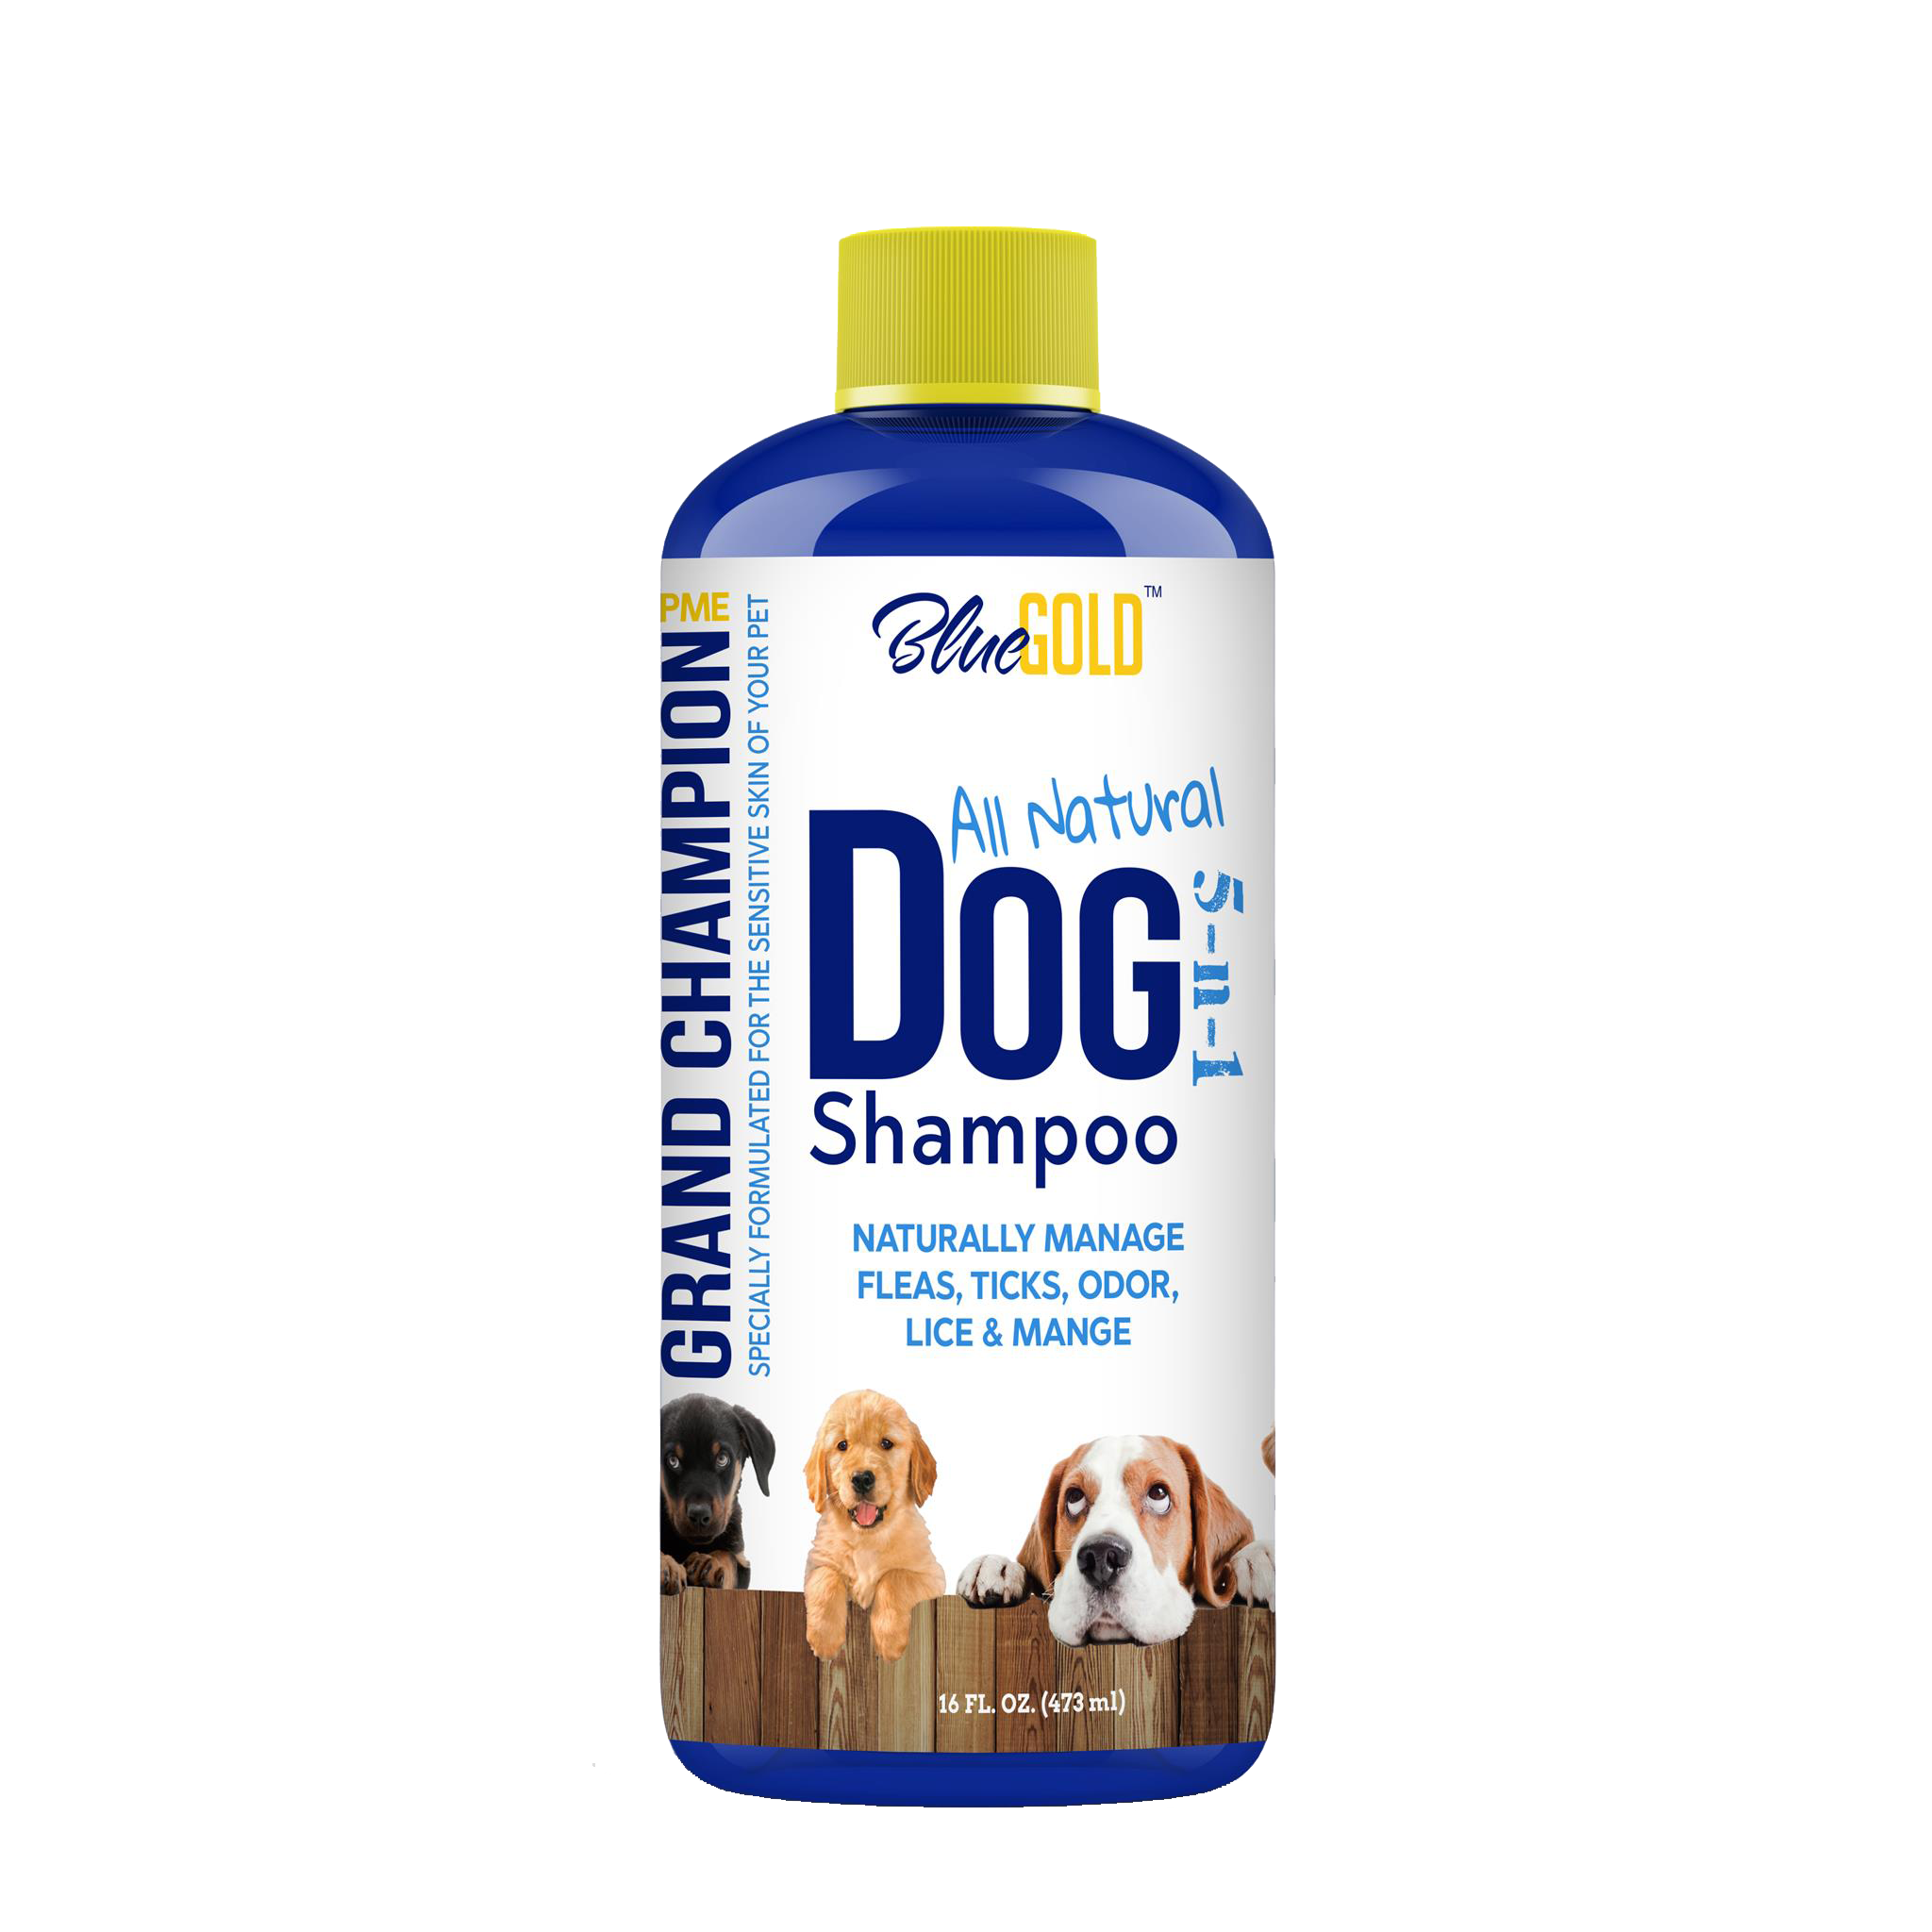 We take pet care seriously with our Blue Gold Dog Shampoo! For optimum pet health